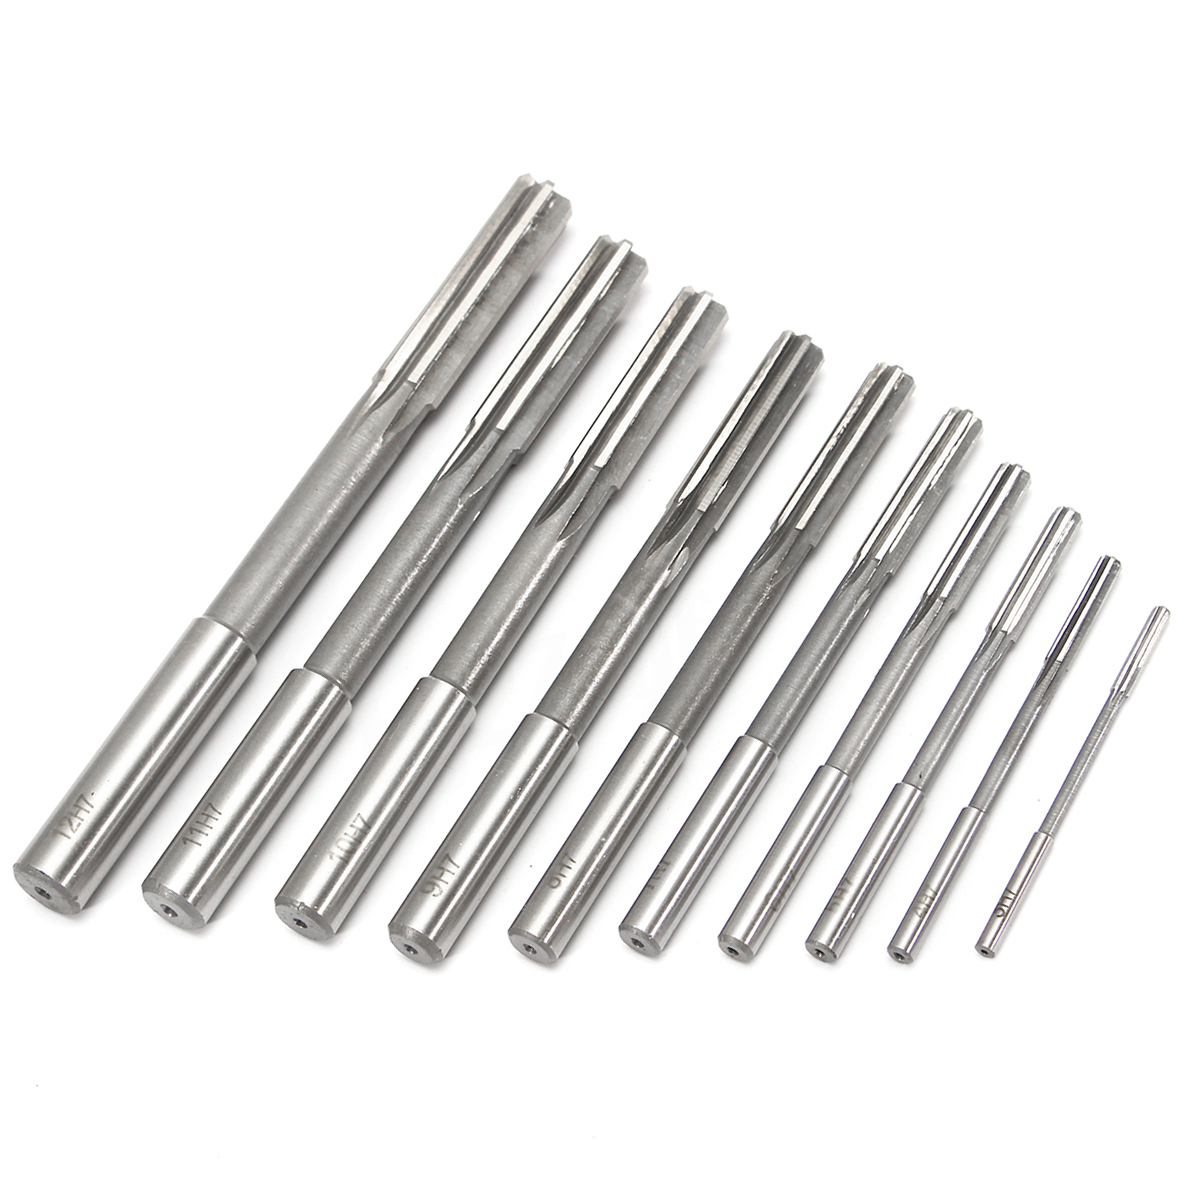 10pcs HSS H7 Straight Shank Milling Reamer Chucking Machine <font><b>Cutter</b></font> Tool 3/4/5/6/7/<font><b>8</b></font>/9/10/11/12 <font><b>mm</b></font> For Reaming Hole Repair Mayitr image